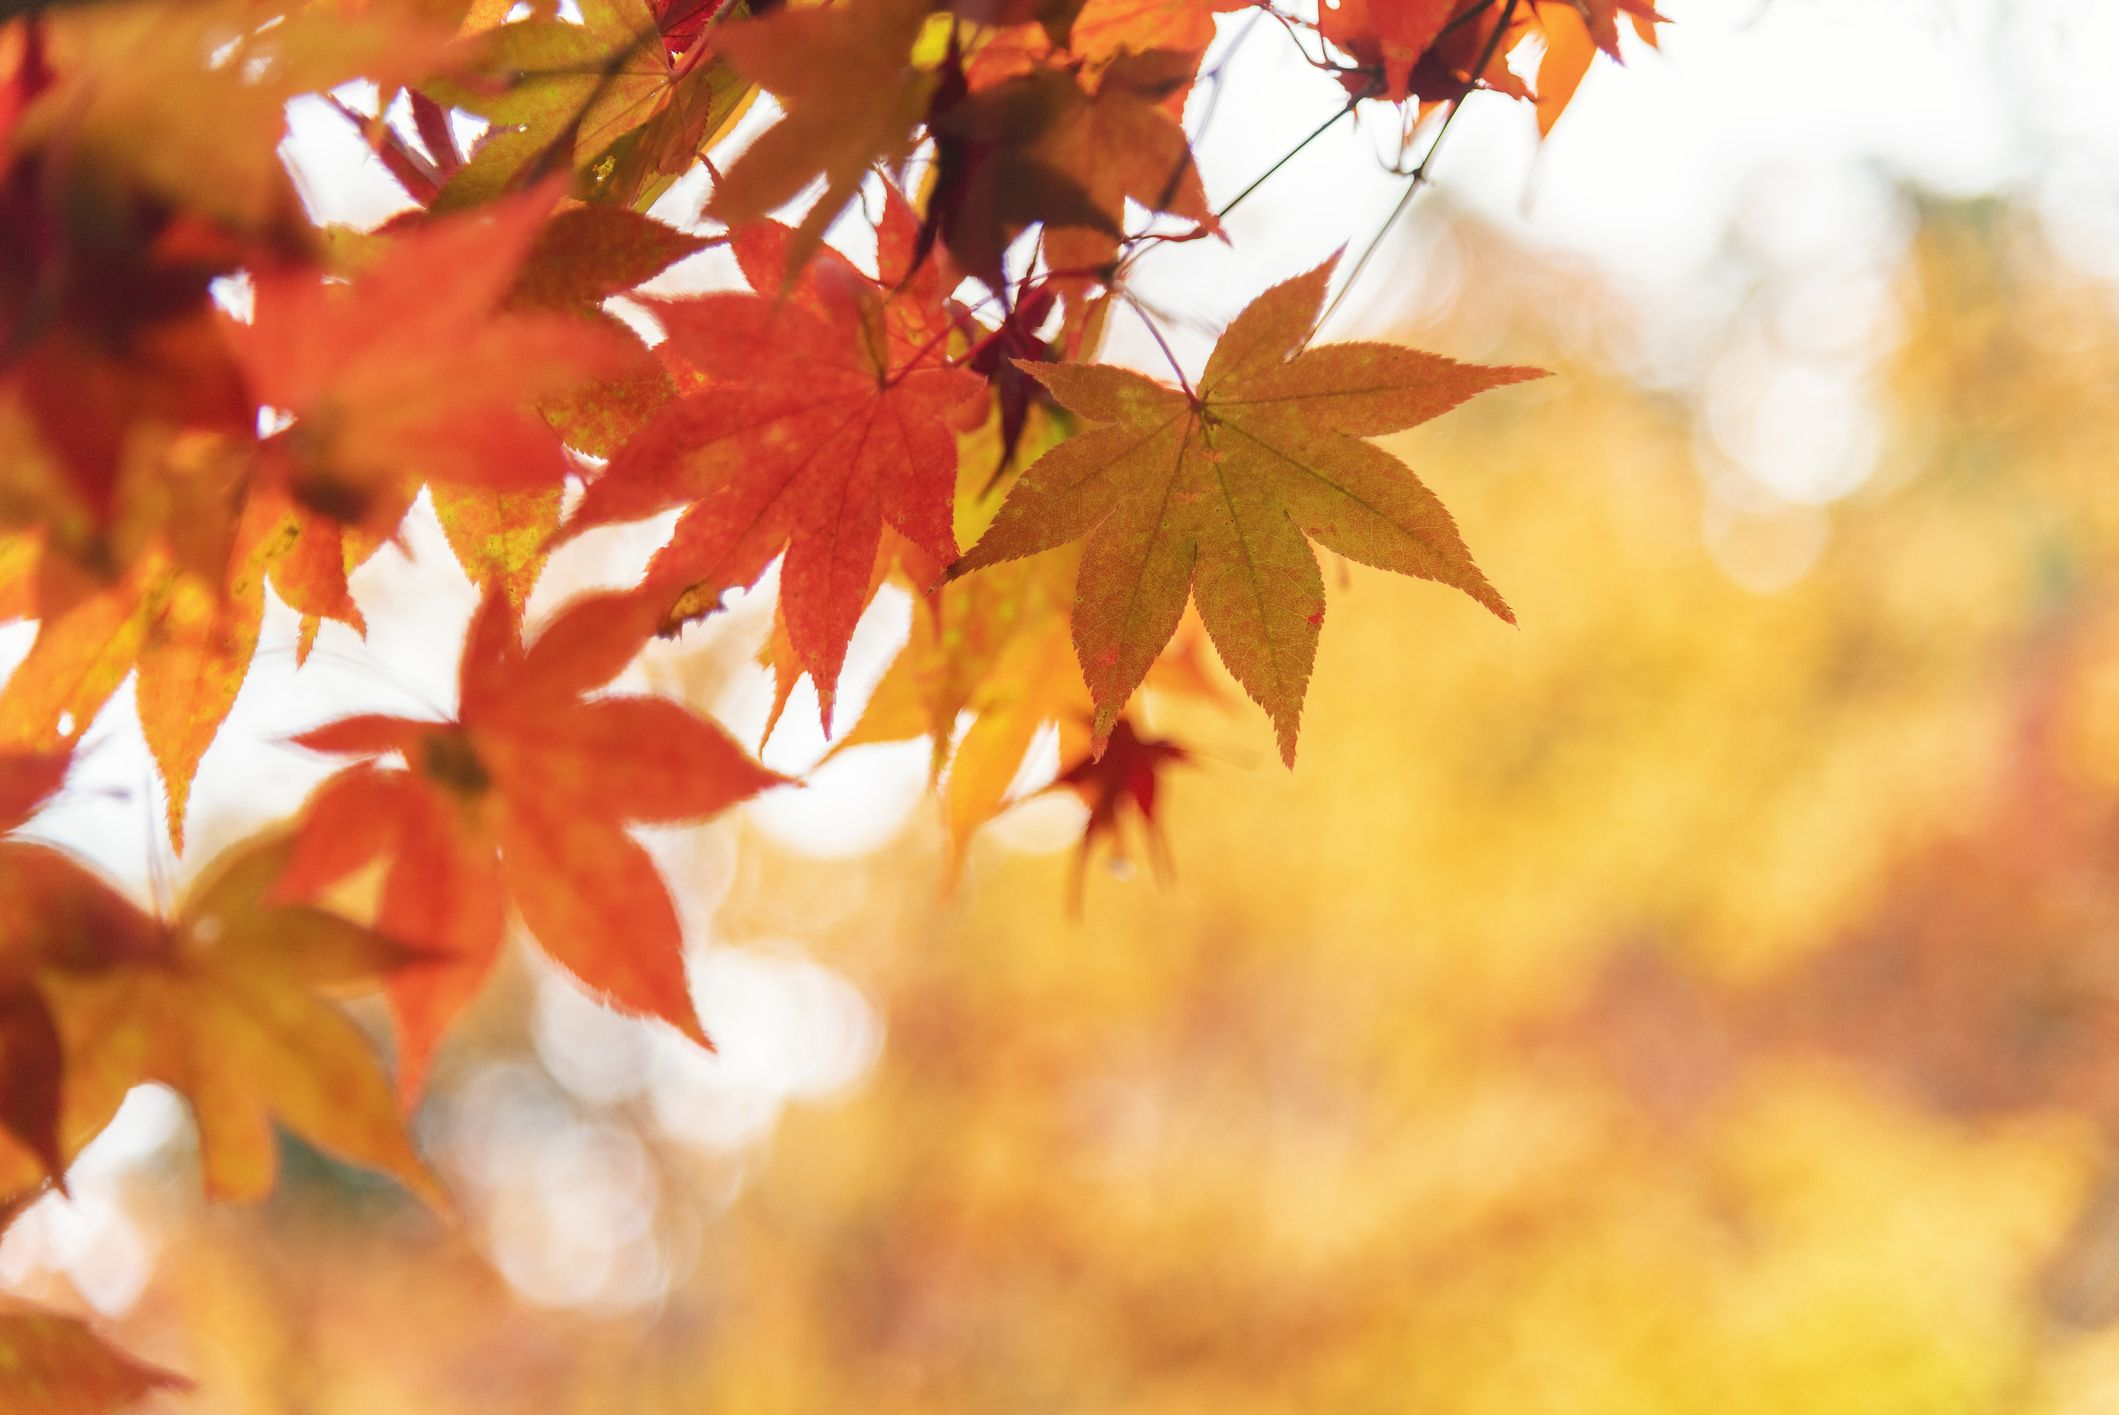 What Are The Reasons Why We Should Love Autumn?